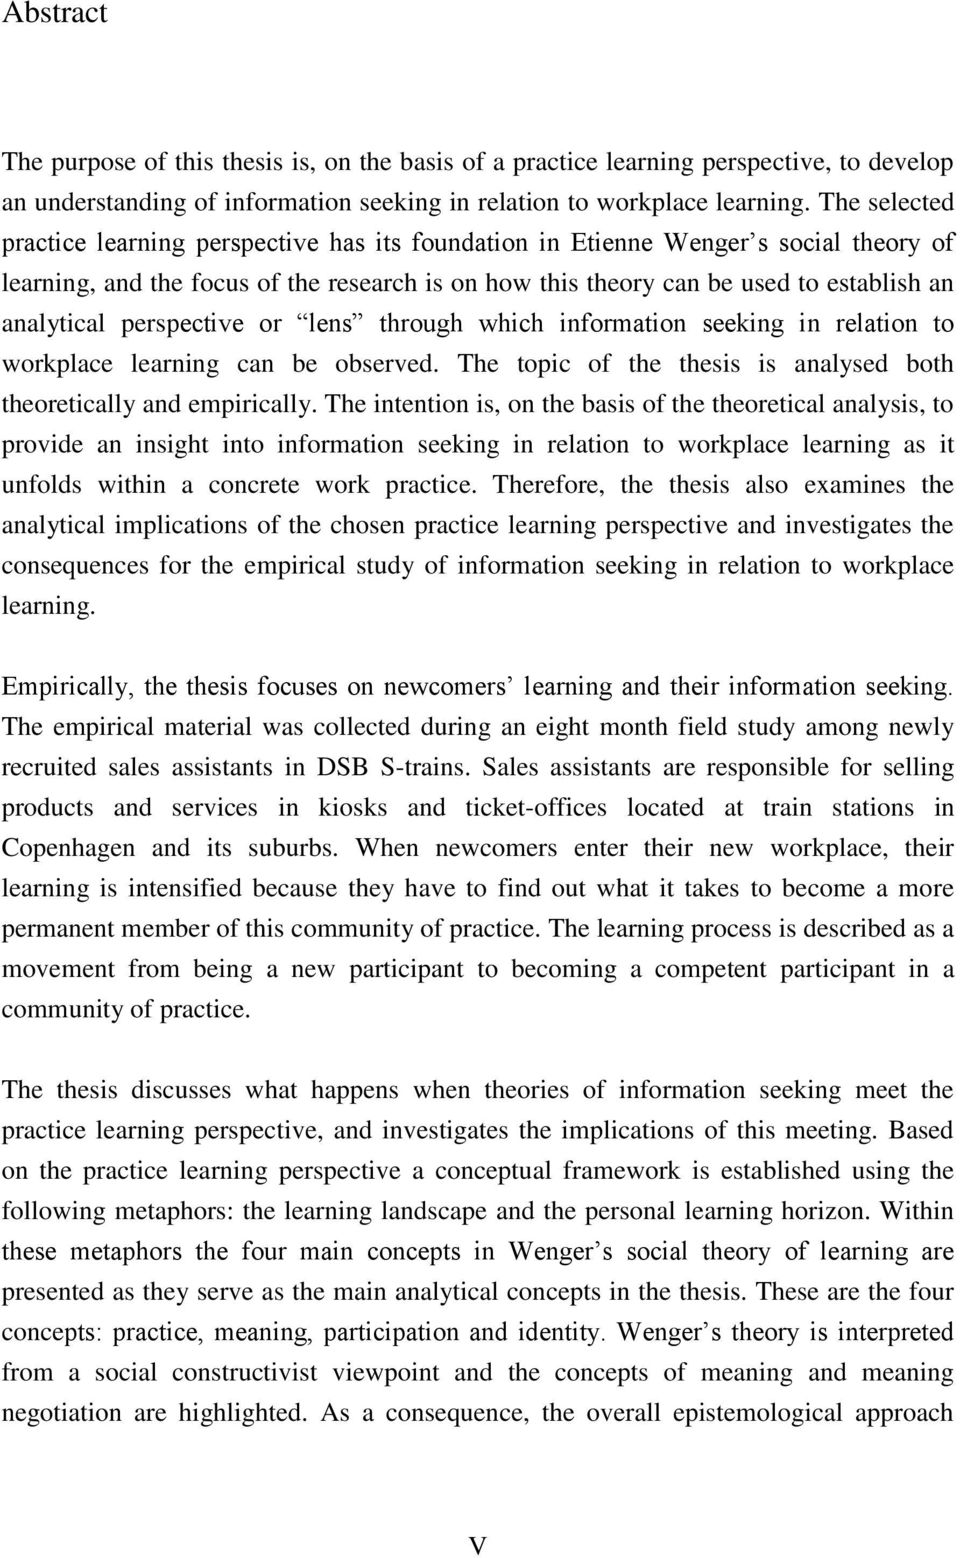 perspective or lens through which information seeking in relation to workplace learning can be observed. The topic of the thesis is analysed both theoretically and empirically.